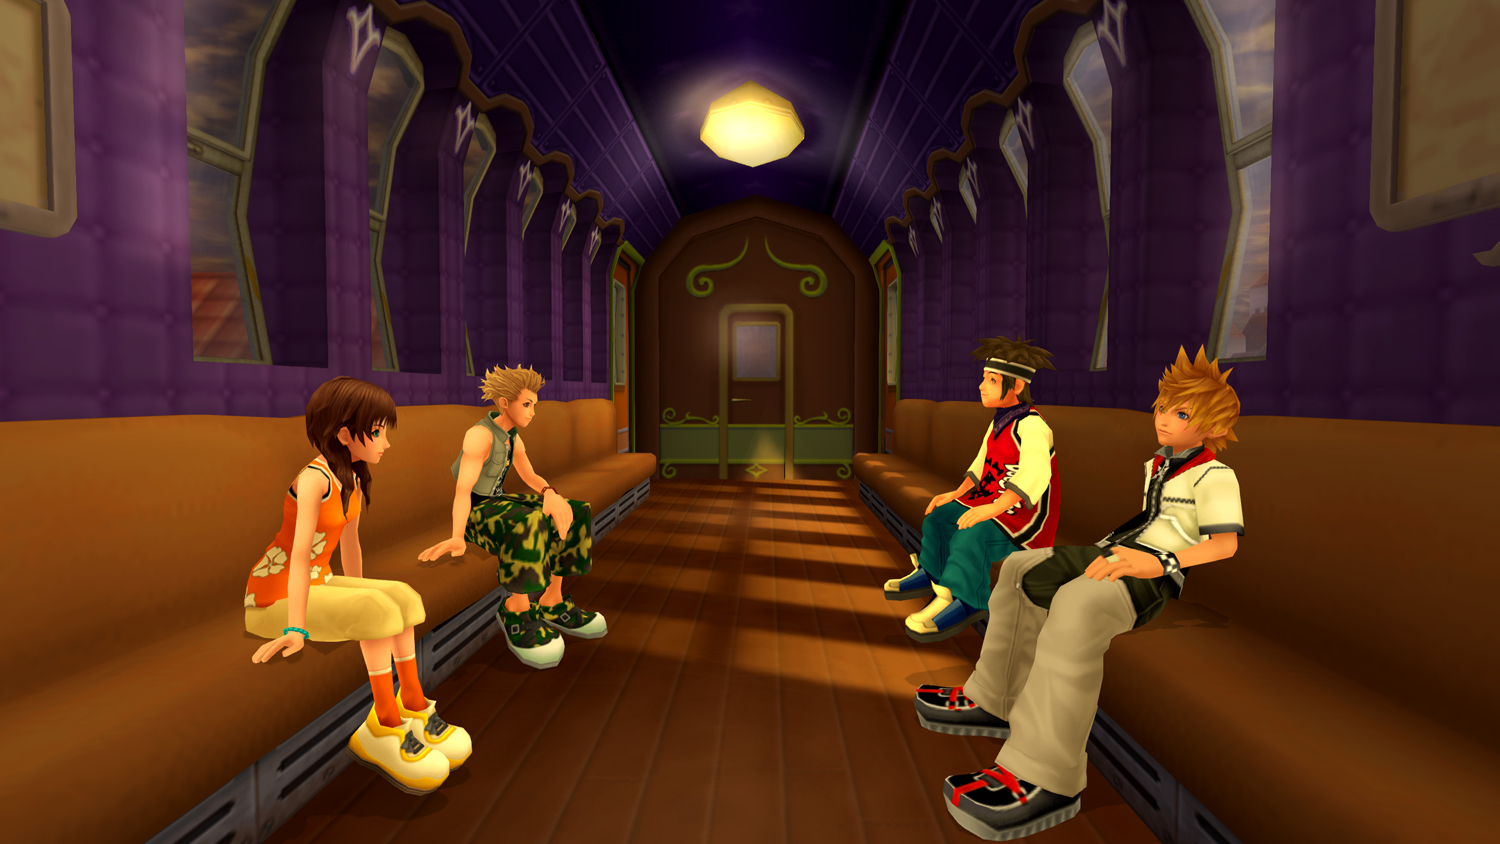 Download Game Kingdom Hearts 2 Final Mix For Pcsx2 Settings For Low